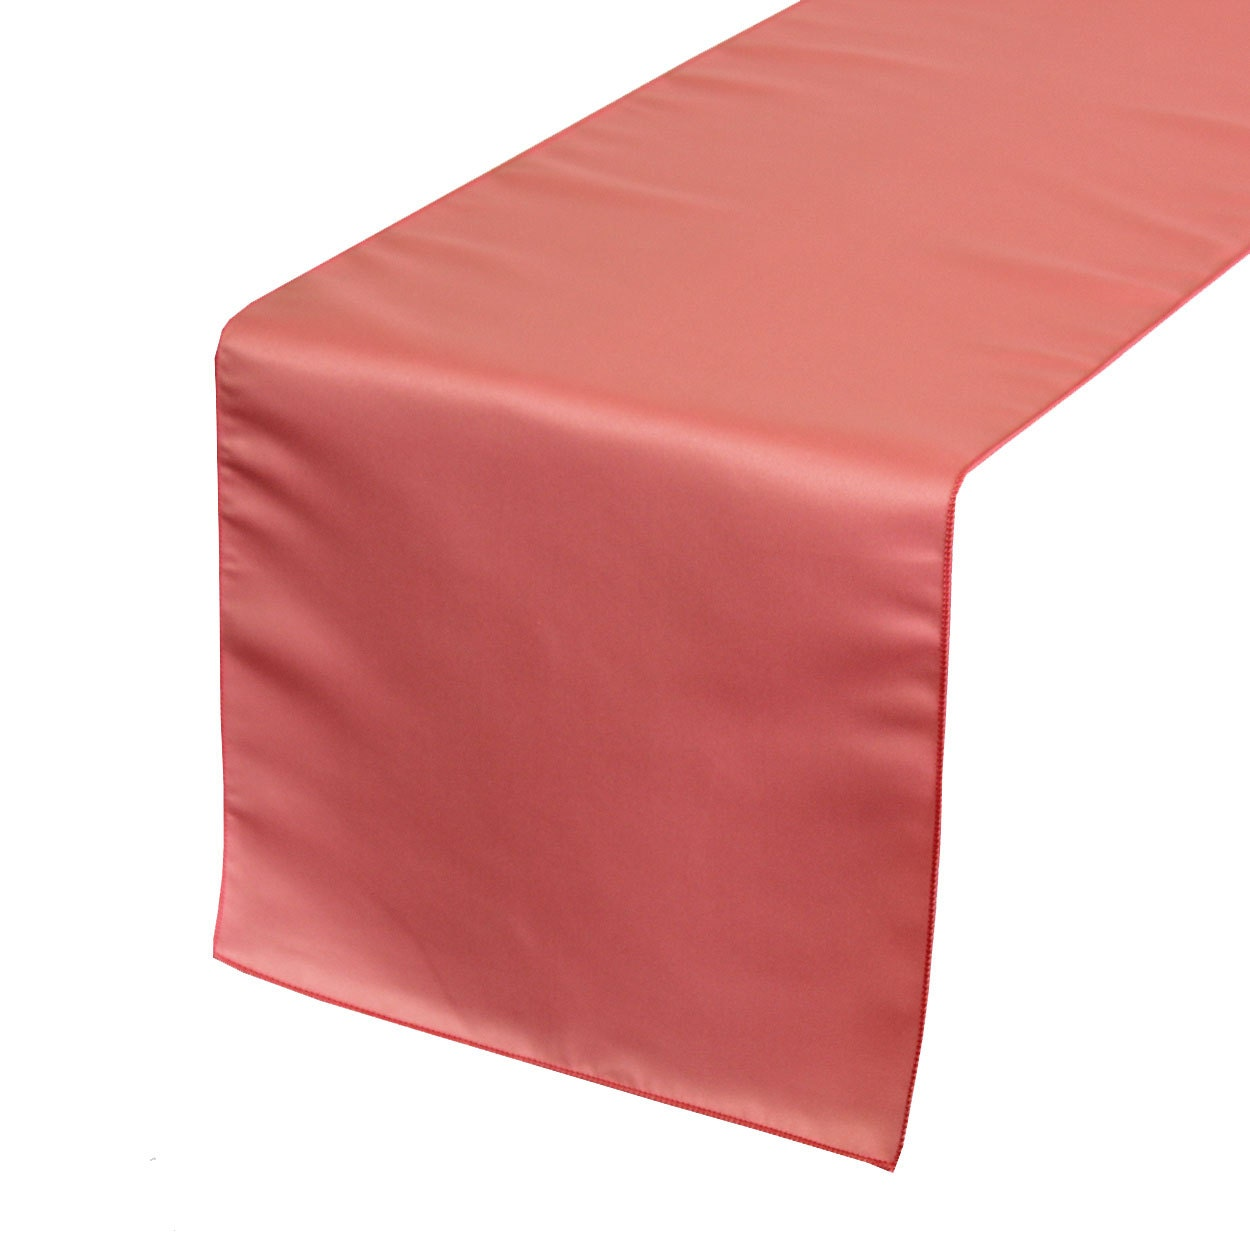 Yourchaircovers coral lamour satin table runner wedding for Table runner